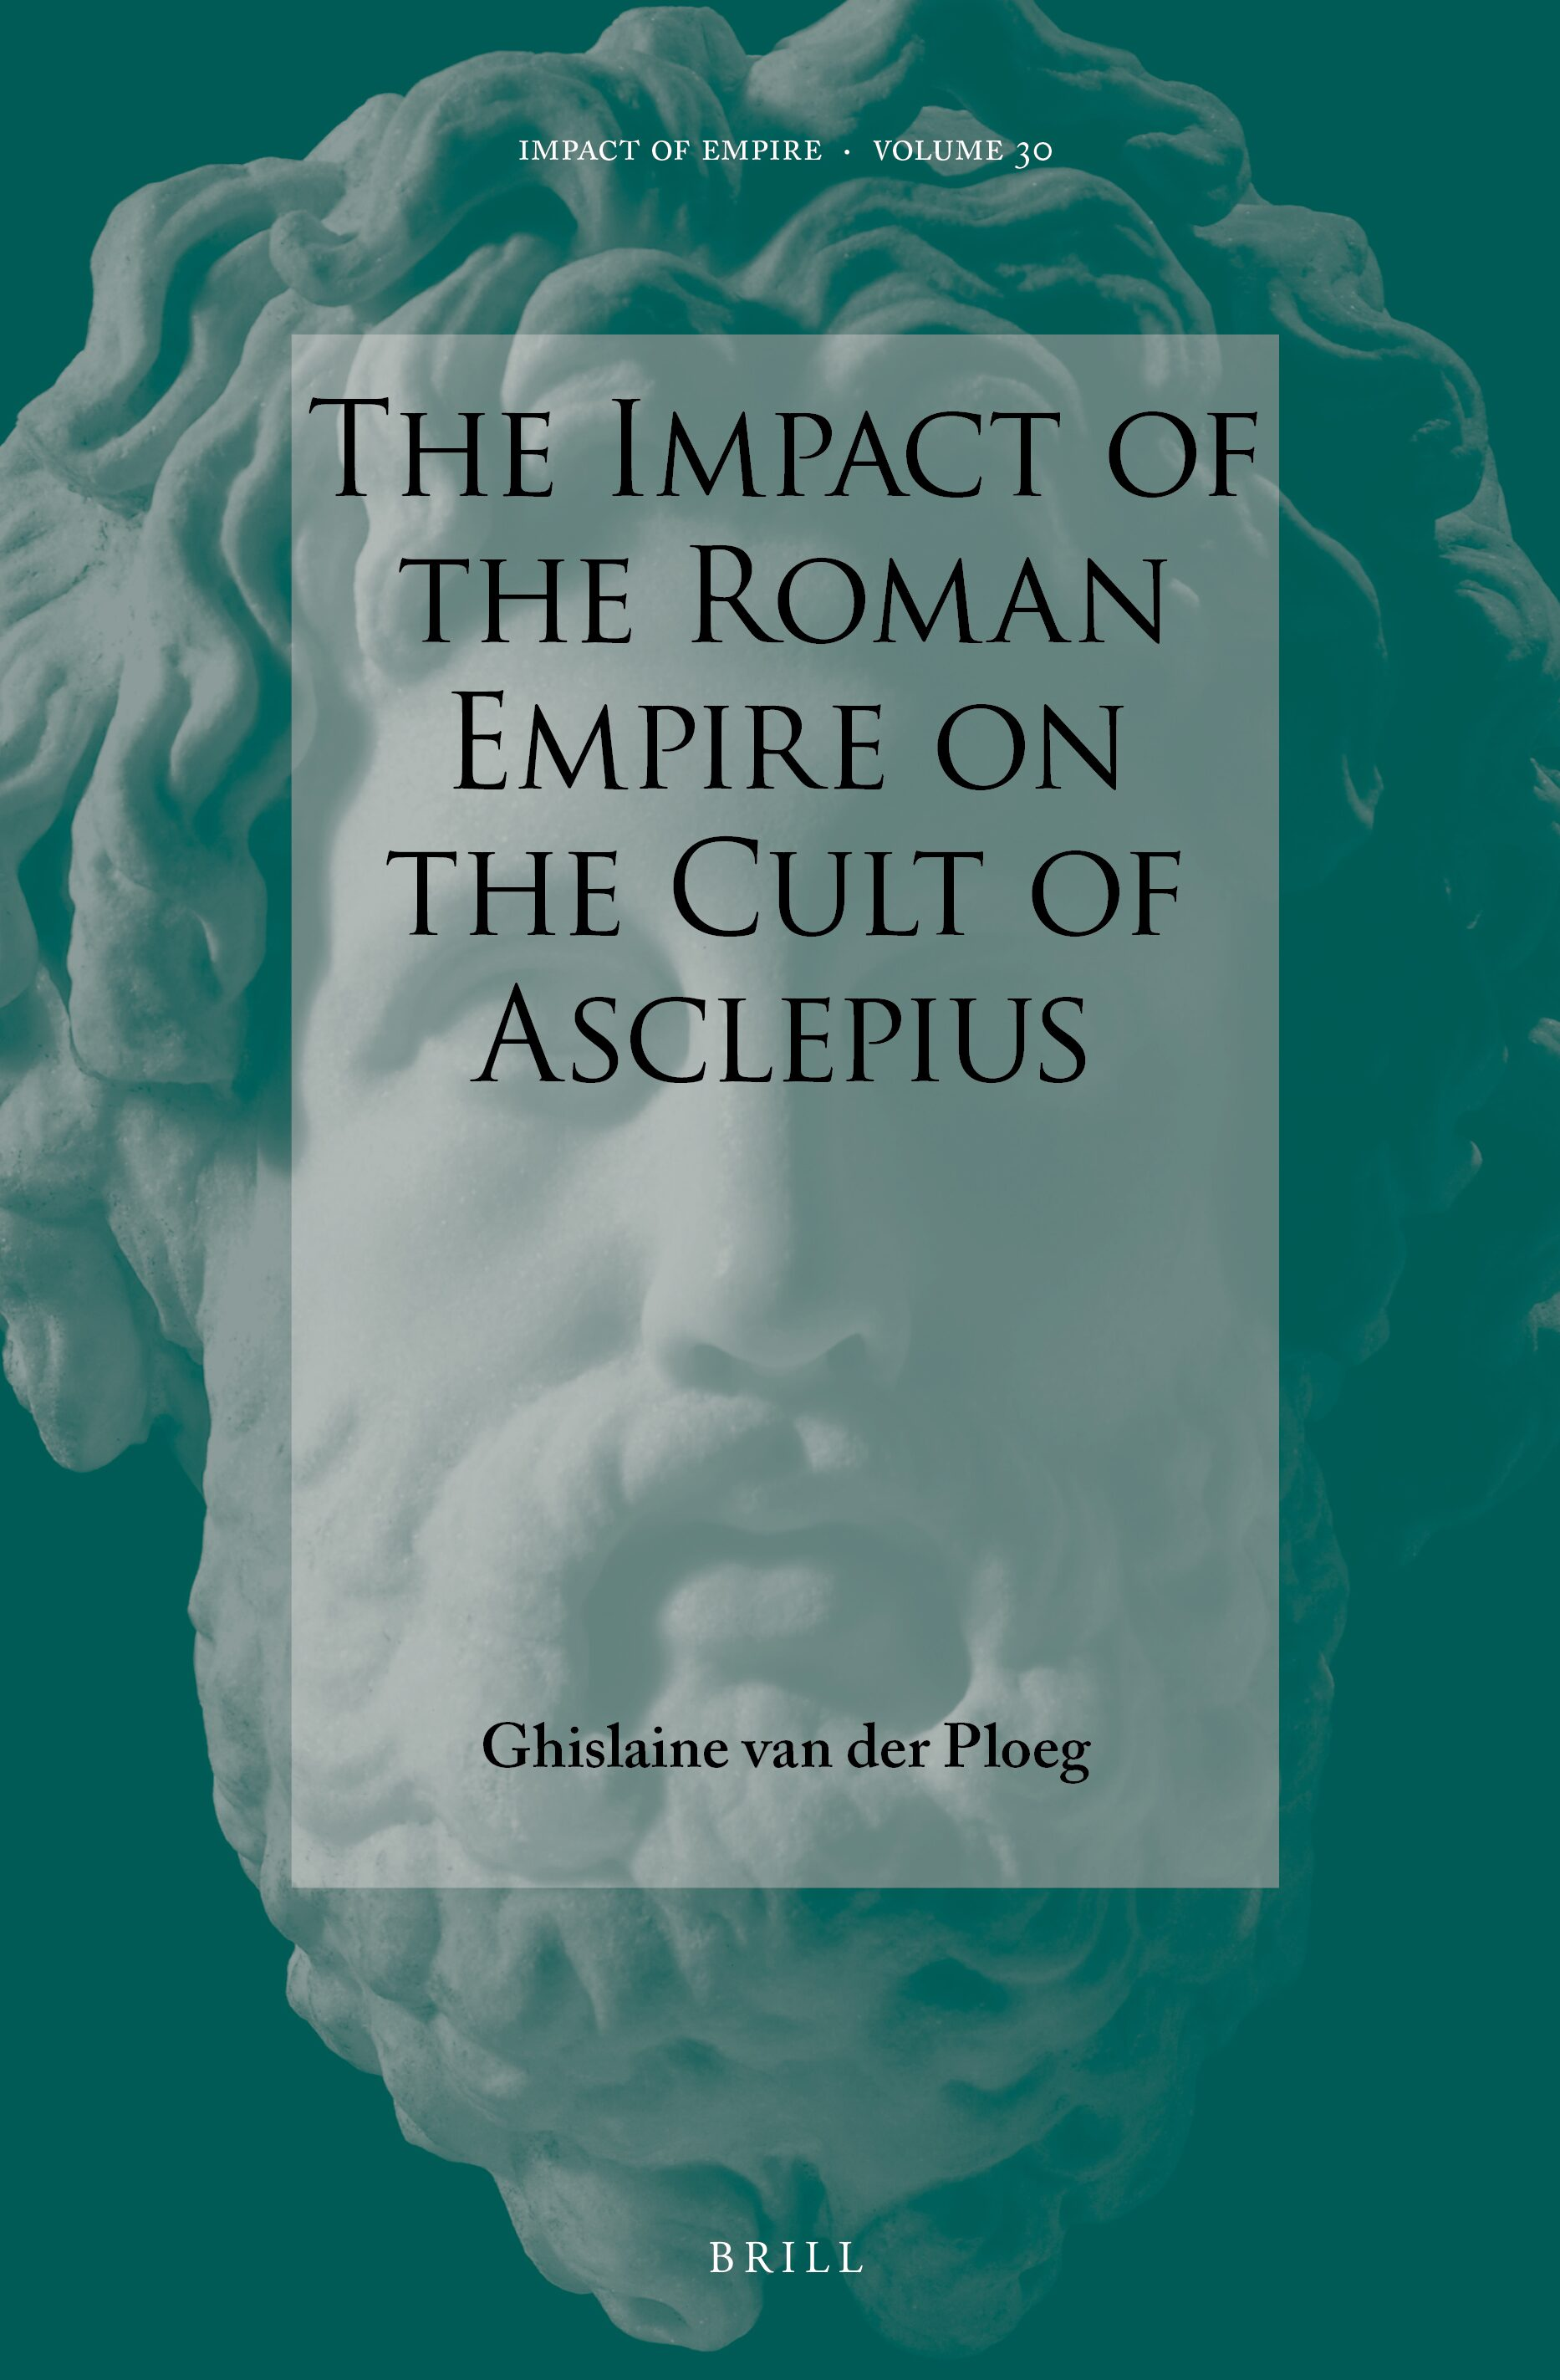 Imperial Relations With Asclepius In The Impact Of The Roman Empire On The Cult Of Asclepius